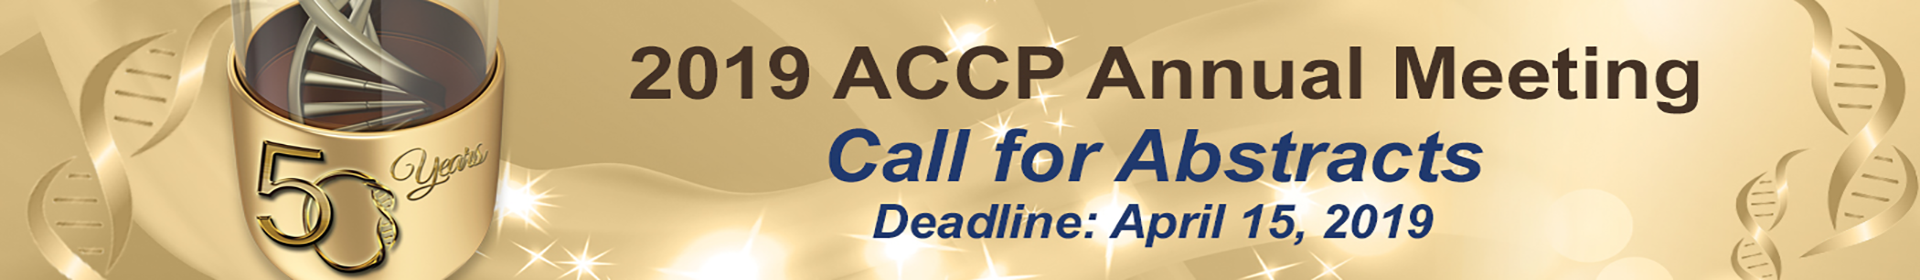 2019 ACCP Annual Meeting - Abstracts Event Banner